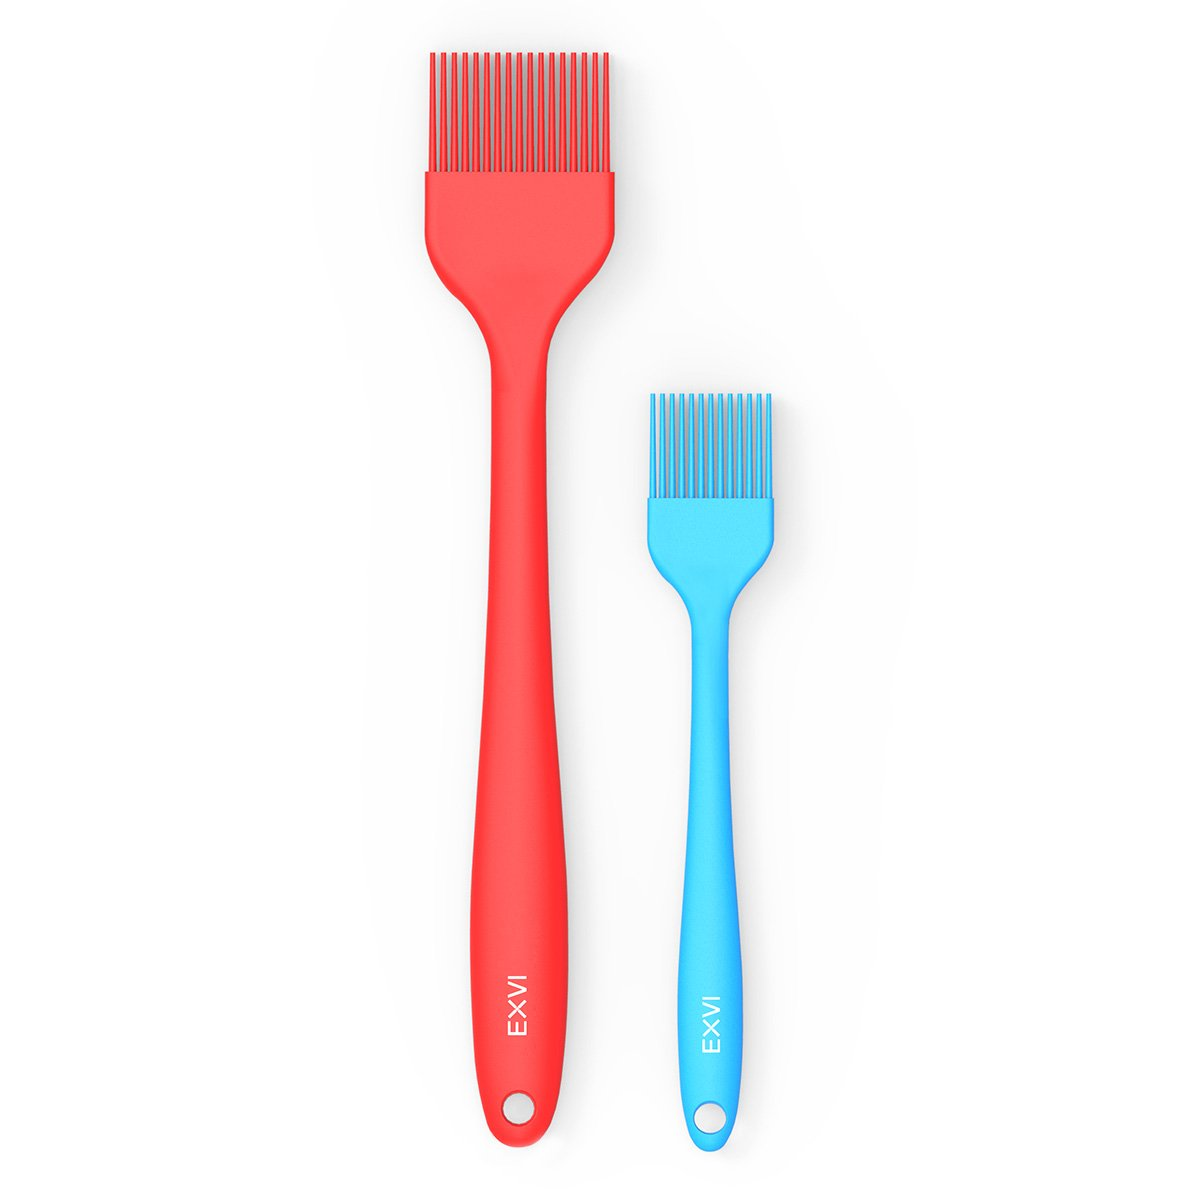 EXVI 2-Piece Silicone Basting Pastry Brush Flexible Food Oil Grilling Brush Non-Stick Bbq brush Utensil for Cooking, Baking and Grilling (8 inch+10 inch) COMIN18JU059473